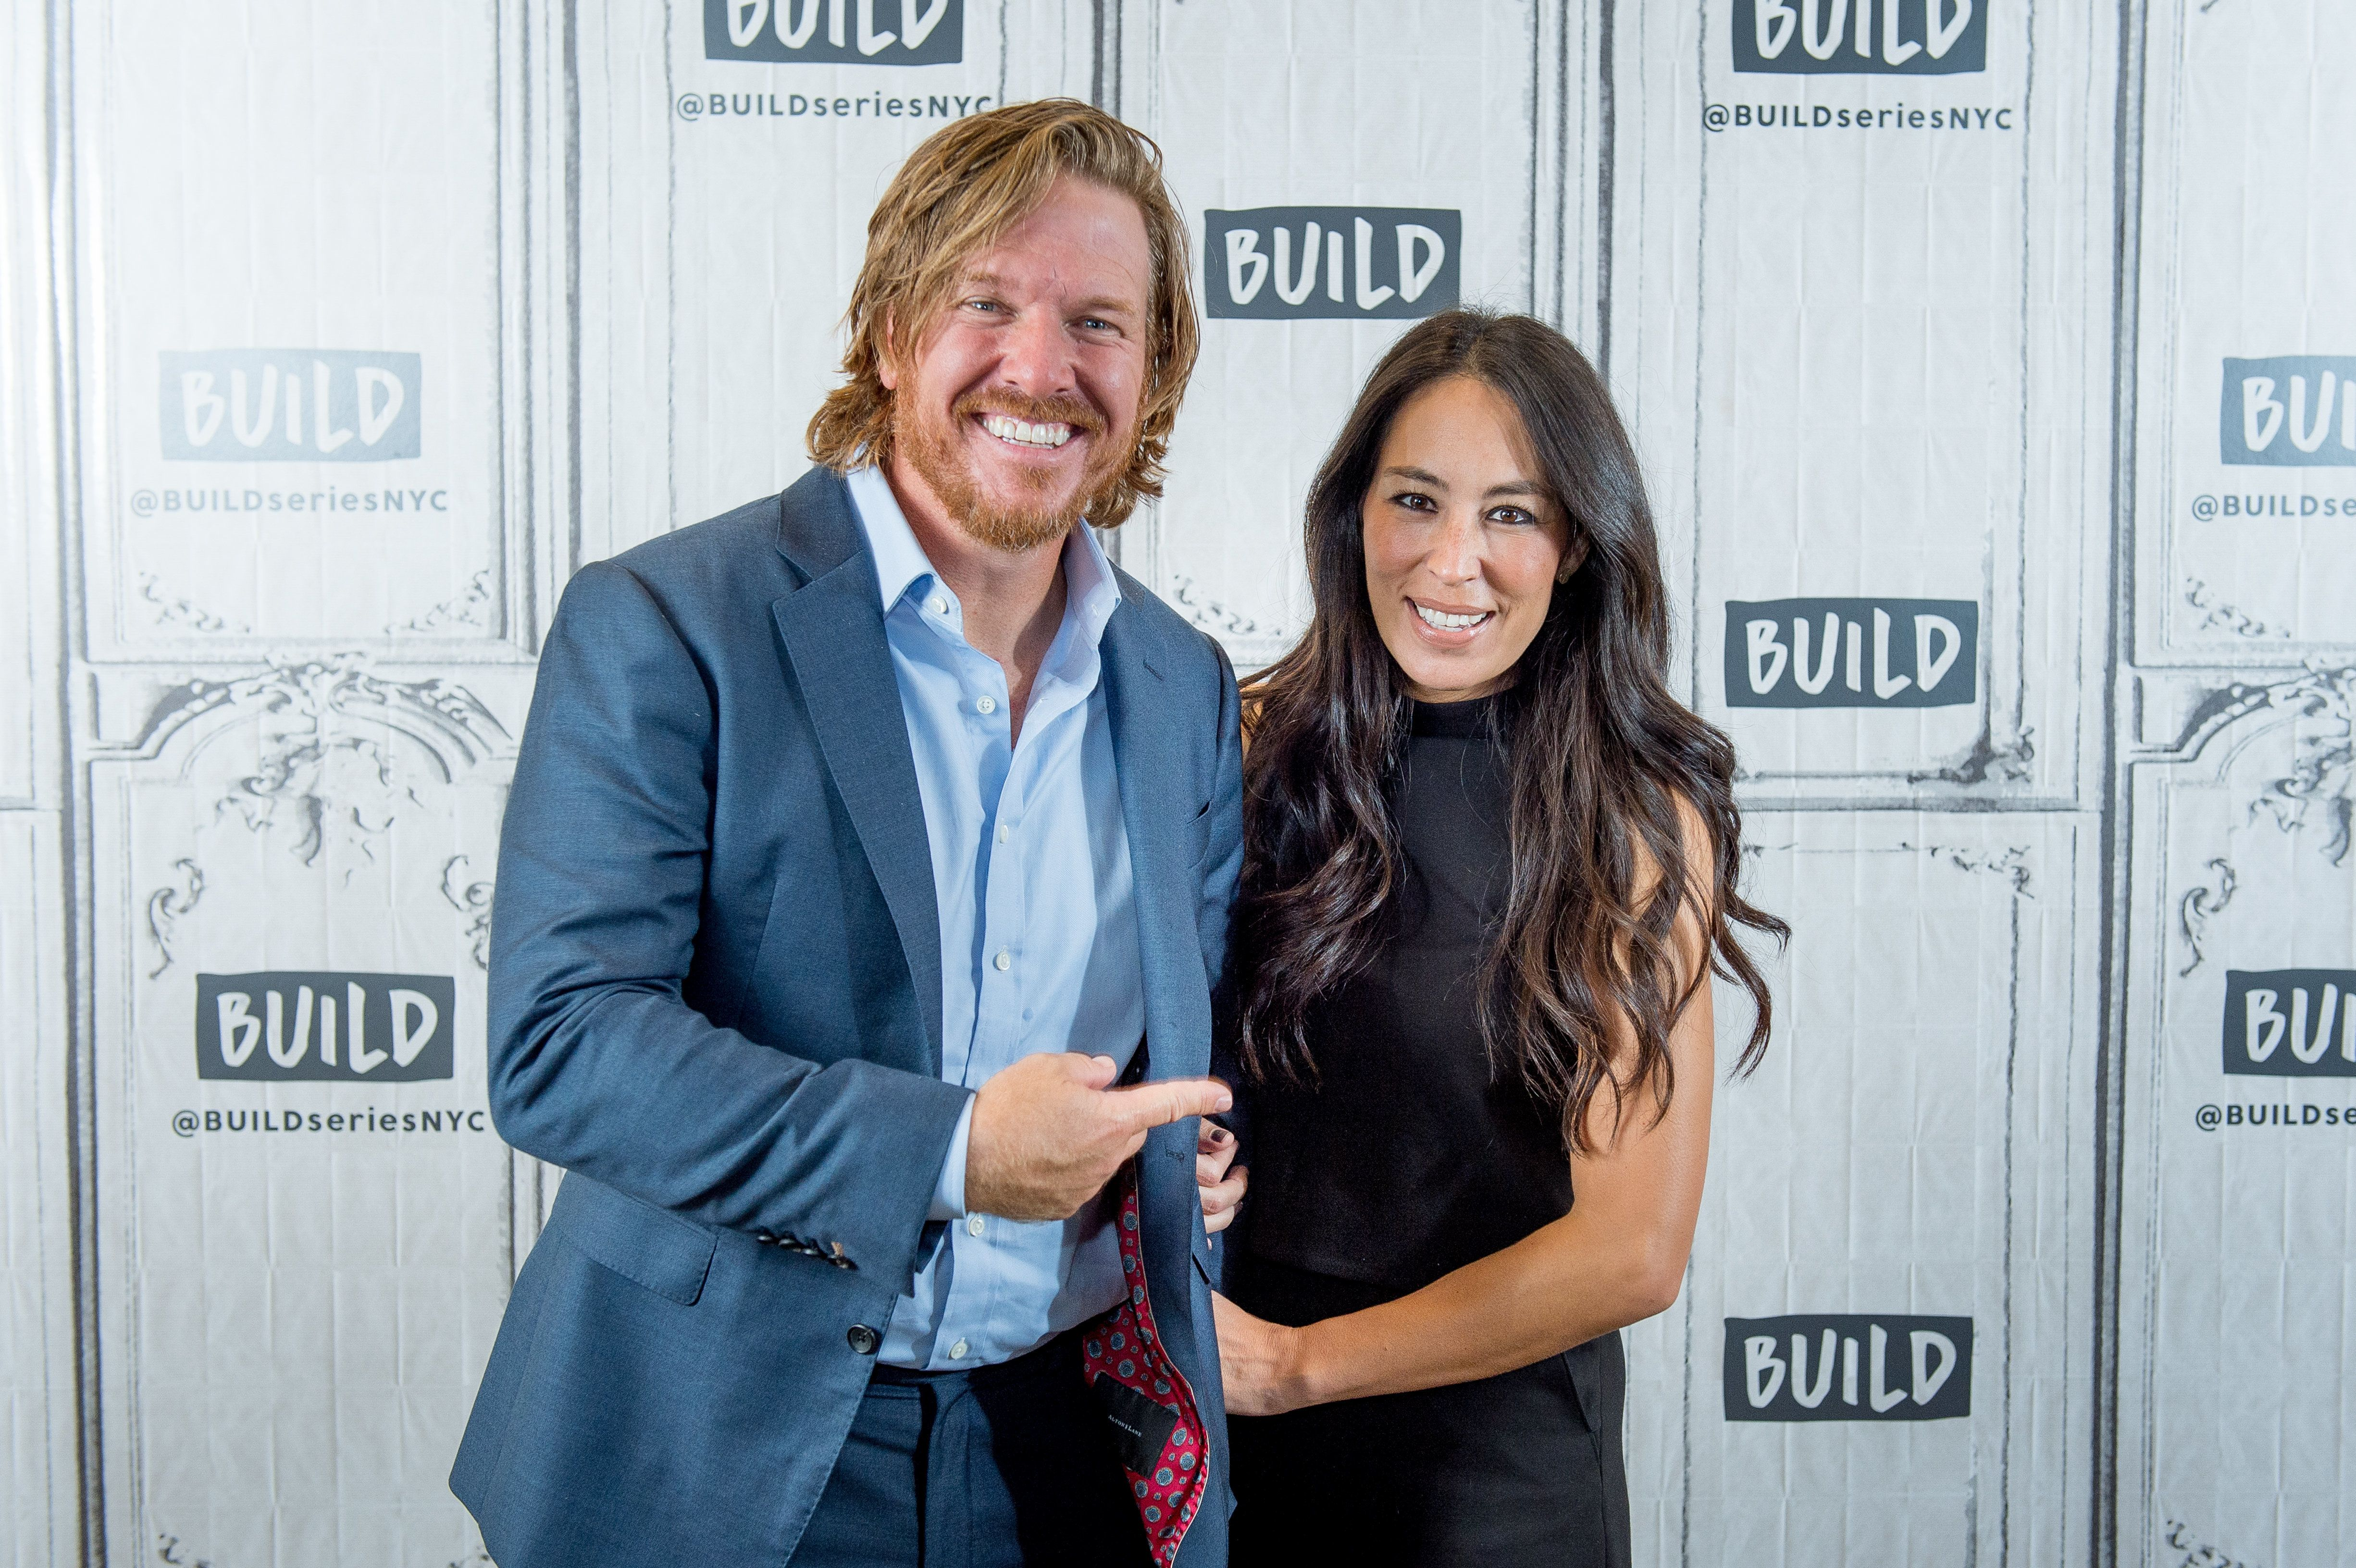 NEW YORK, NY - OCTOBER 18:  Chip and Joanna Gaines discuss 'Capital Gaines: Smart Things I Learned Doing Stupid Stuff' and the ending of the show 'Fixer Upper' with the Build Series at Build Studio on October 18, 2017 in New York City.  (Photo by Roy Rochlin/FilmMagic)